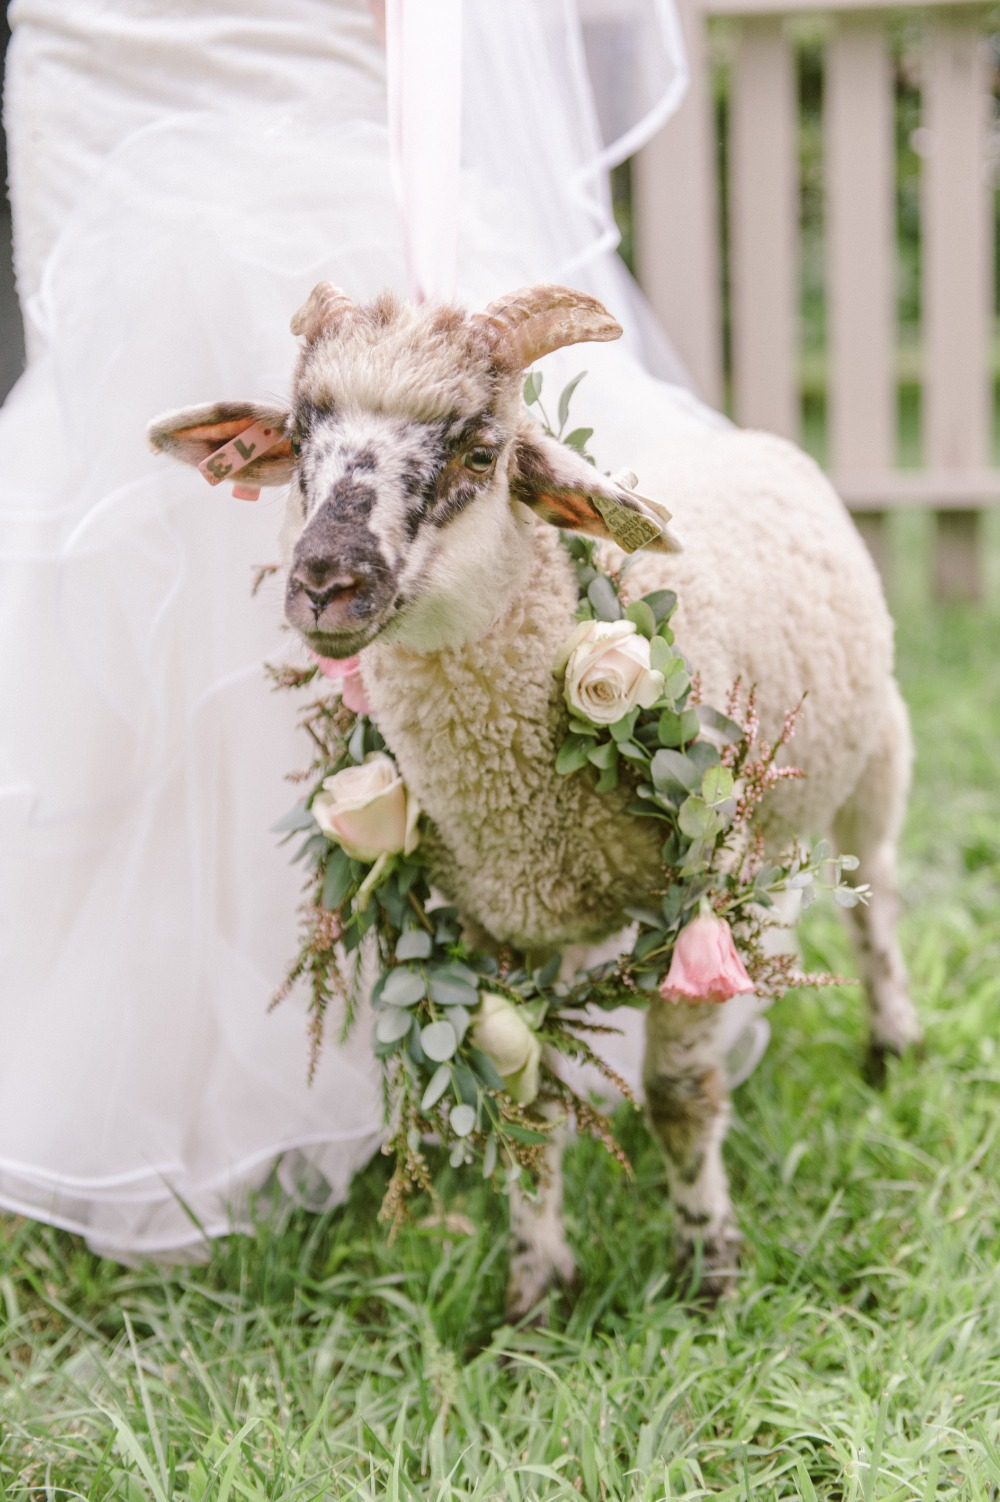 wedding ram with rose and eucalyptus wreath